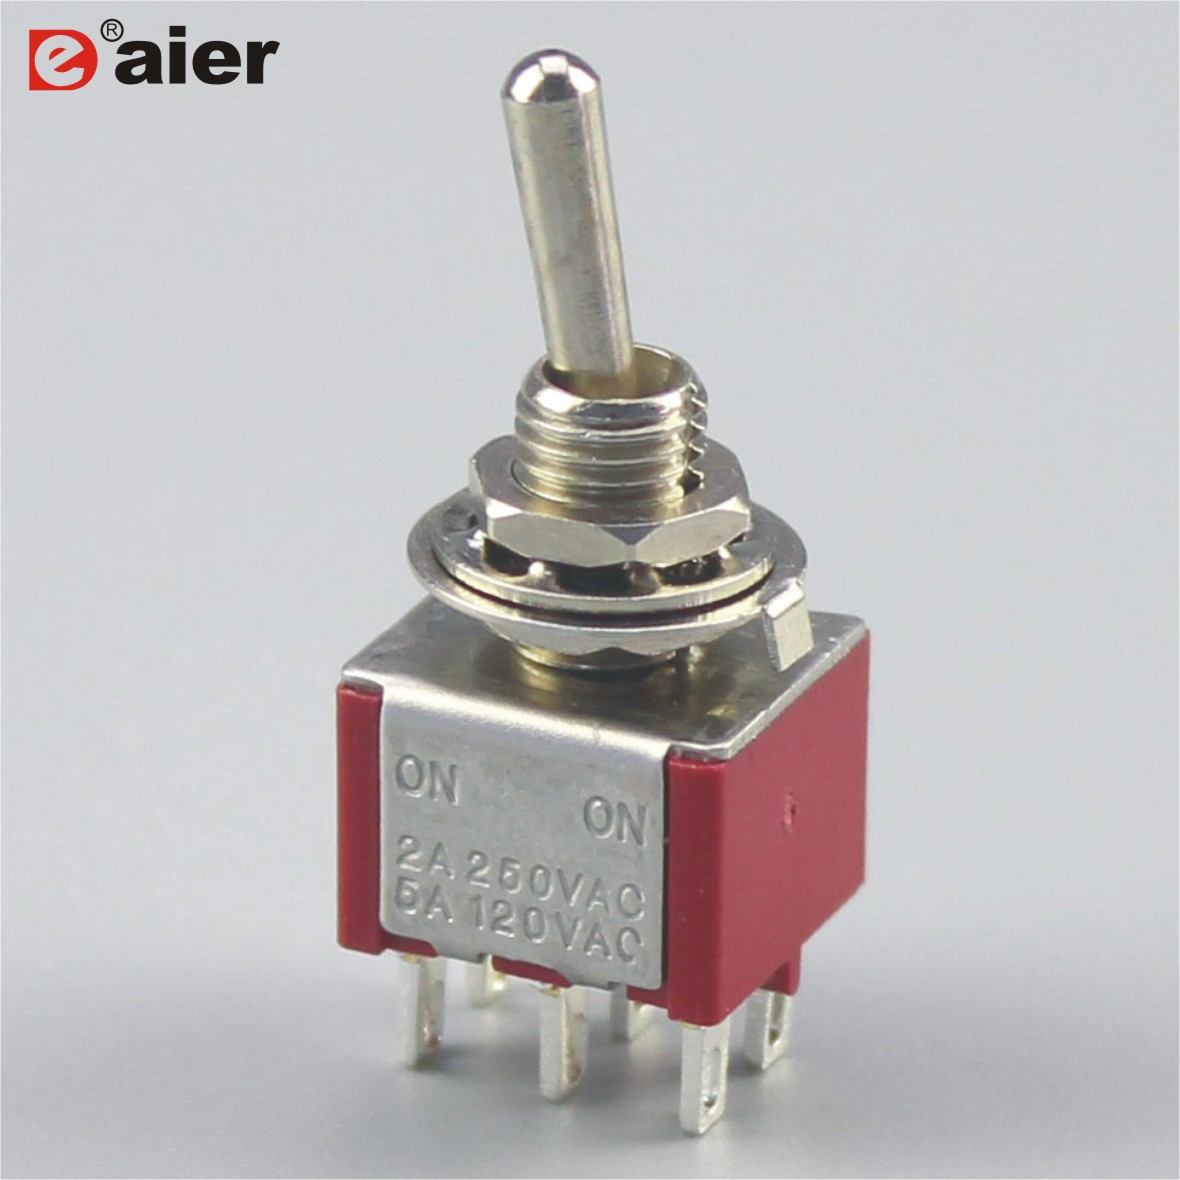 100PCS ON OFF ON Momentary Miniature Toggle Switch AC 3A 250V 6A 125V DPDT Switches 6